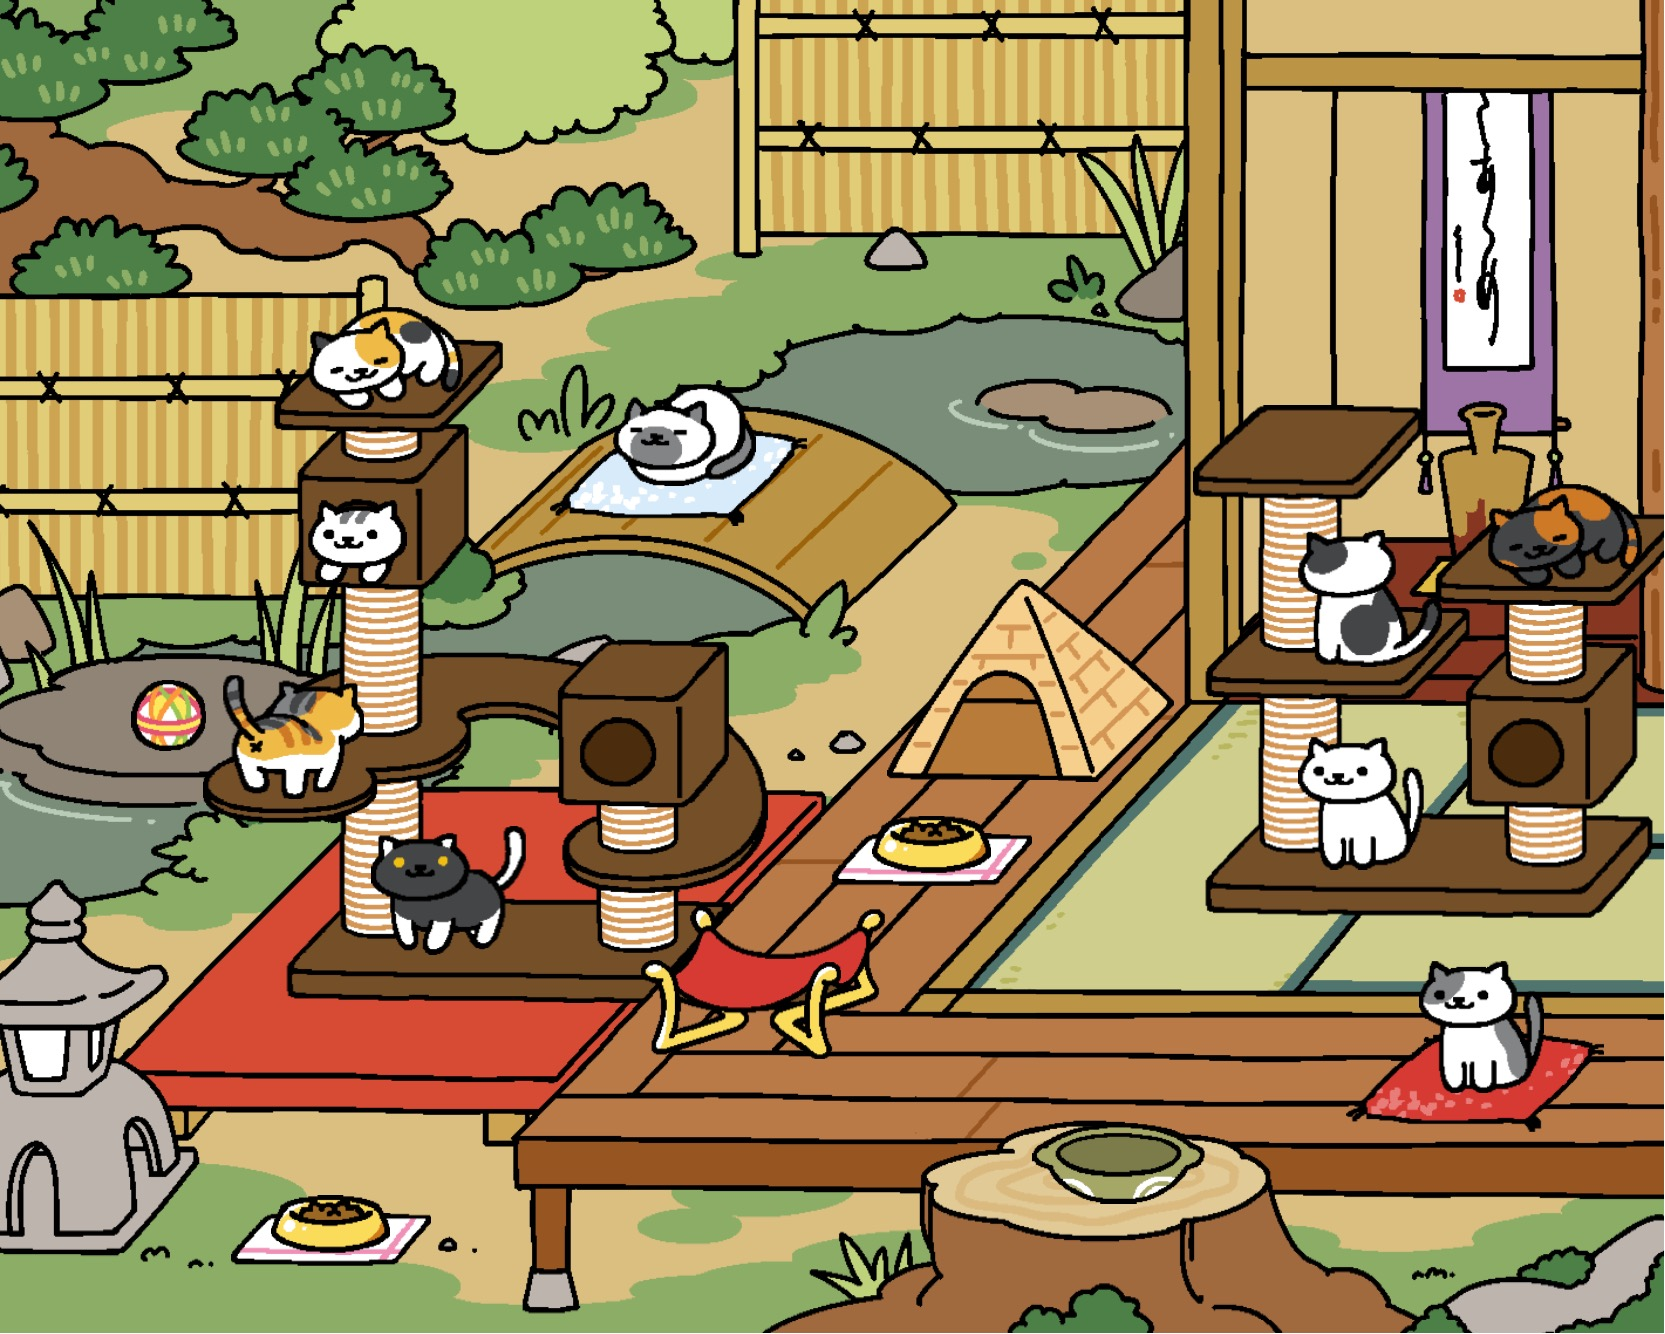 neko atsume update zen style yard original